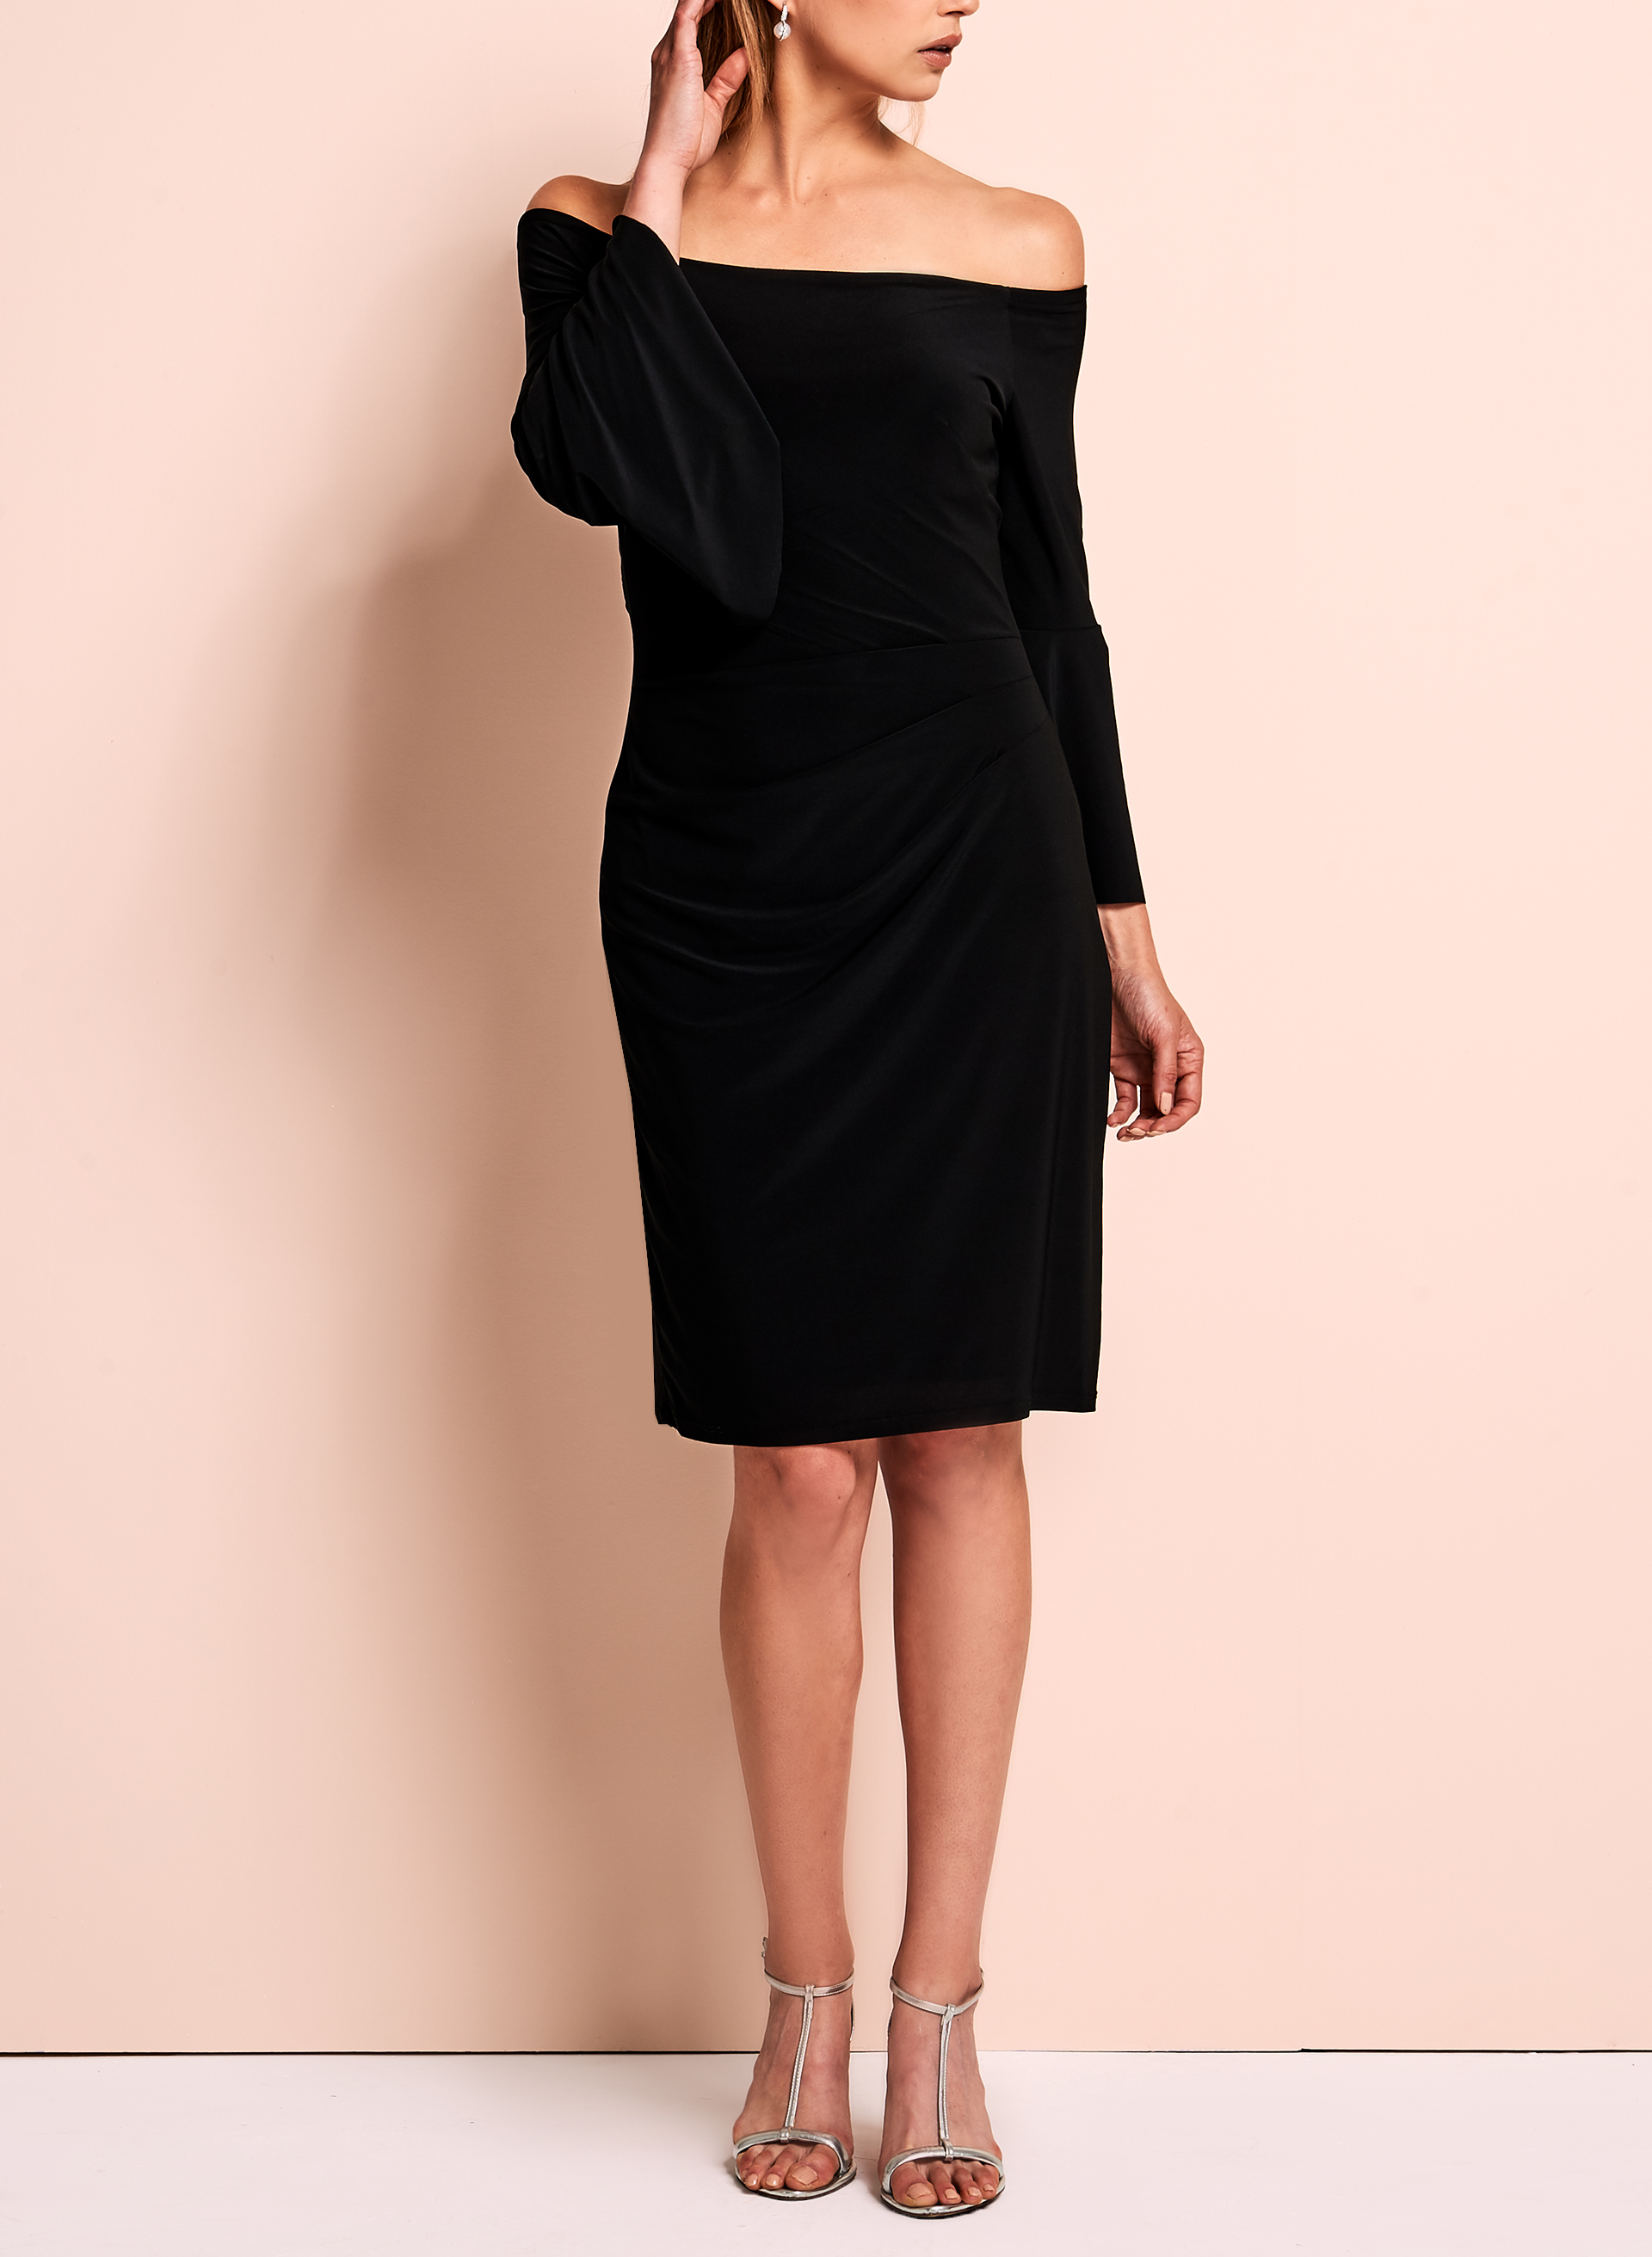 Cachet - Off The Shoulder Bell Sleeve Dress, Black, hi-res